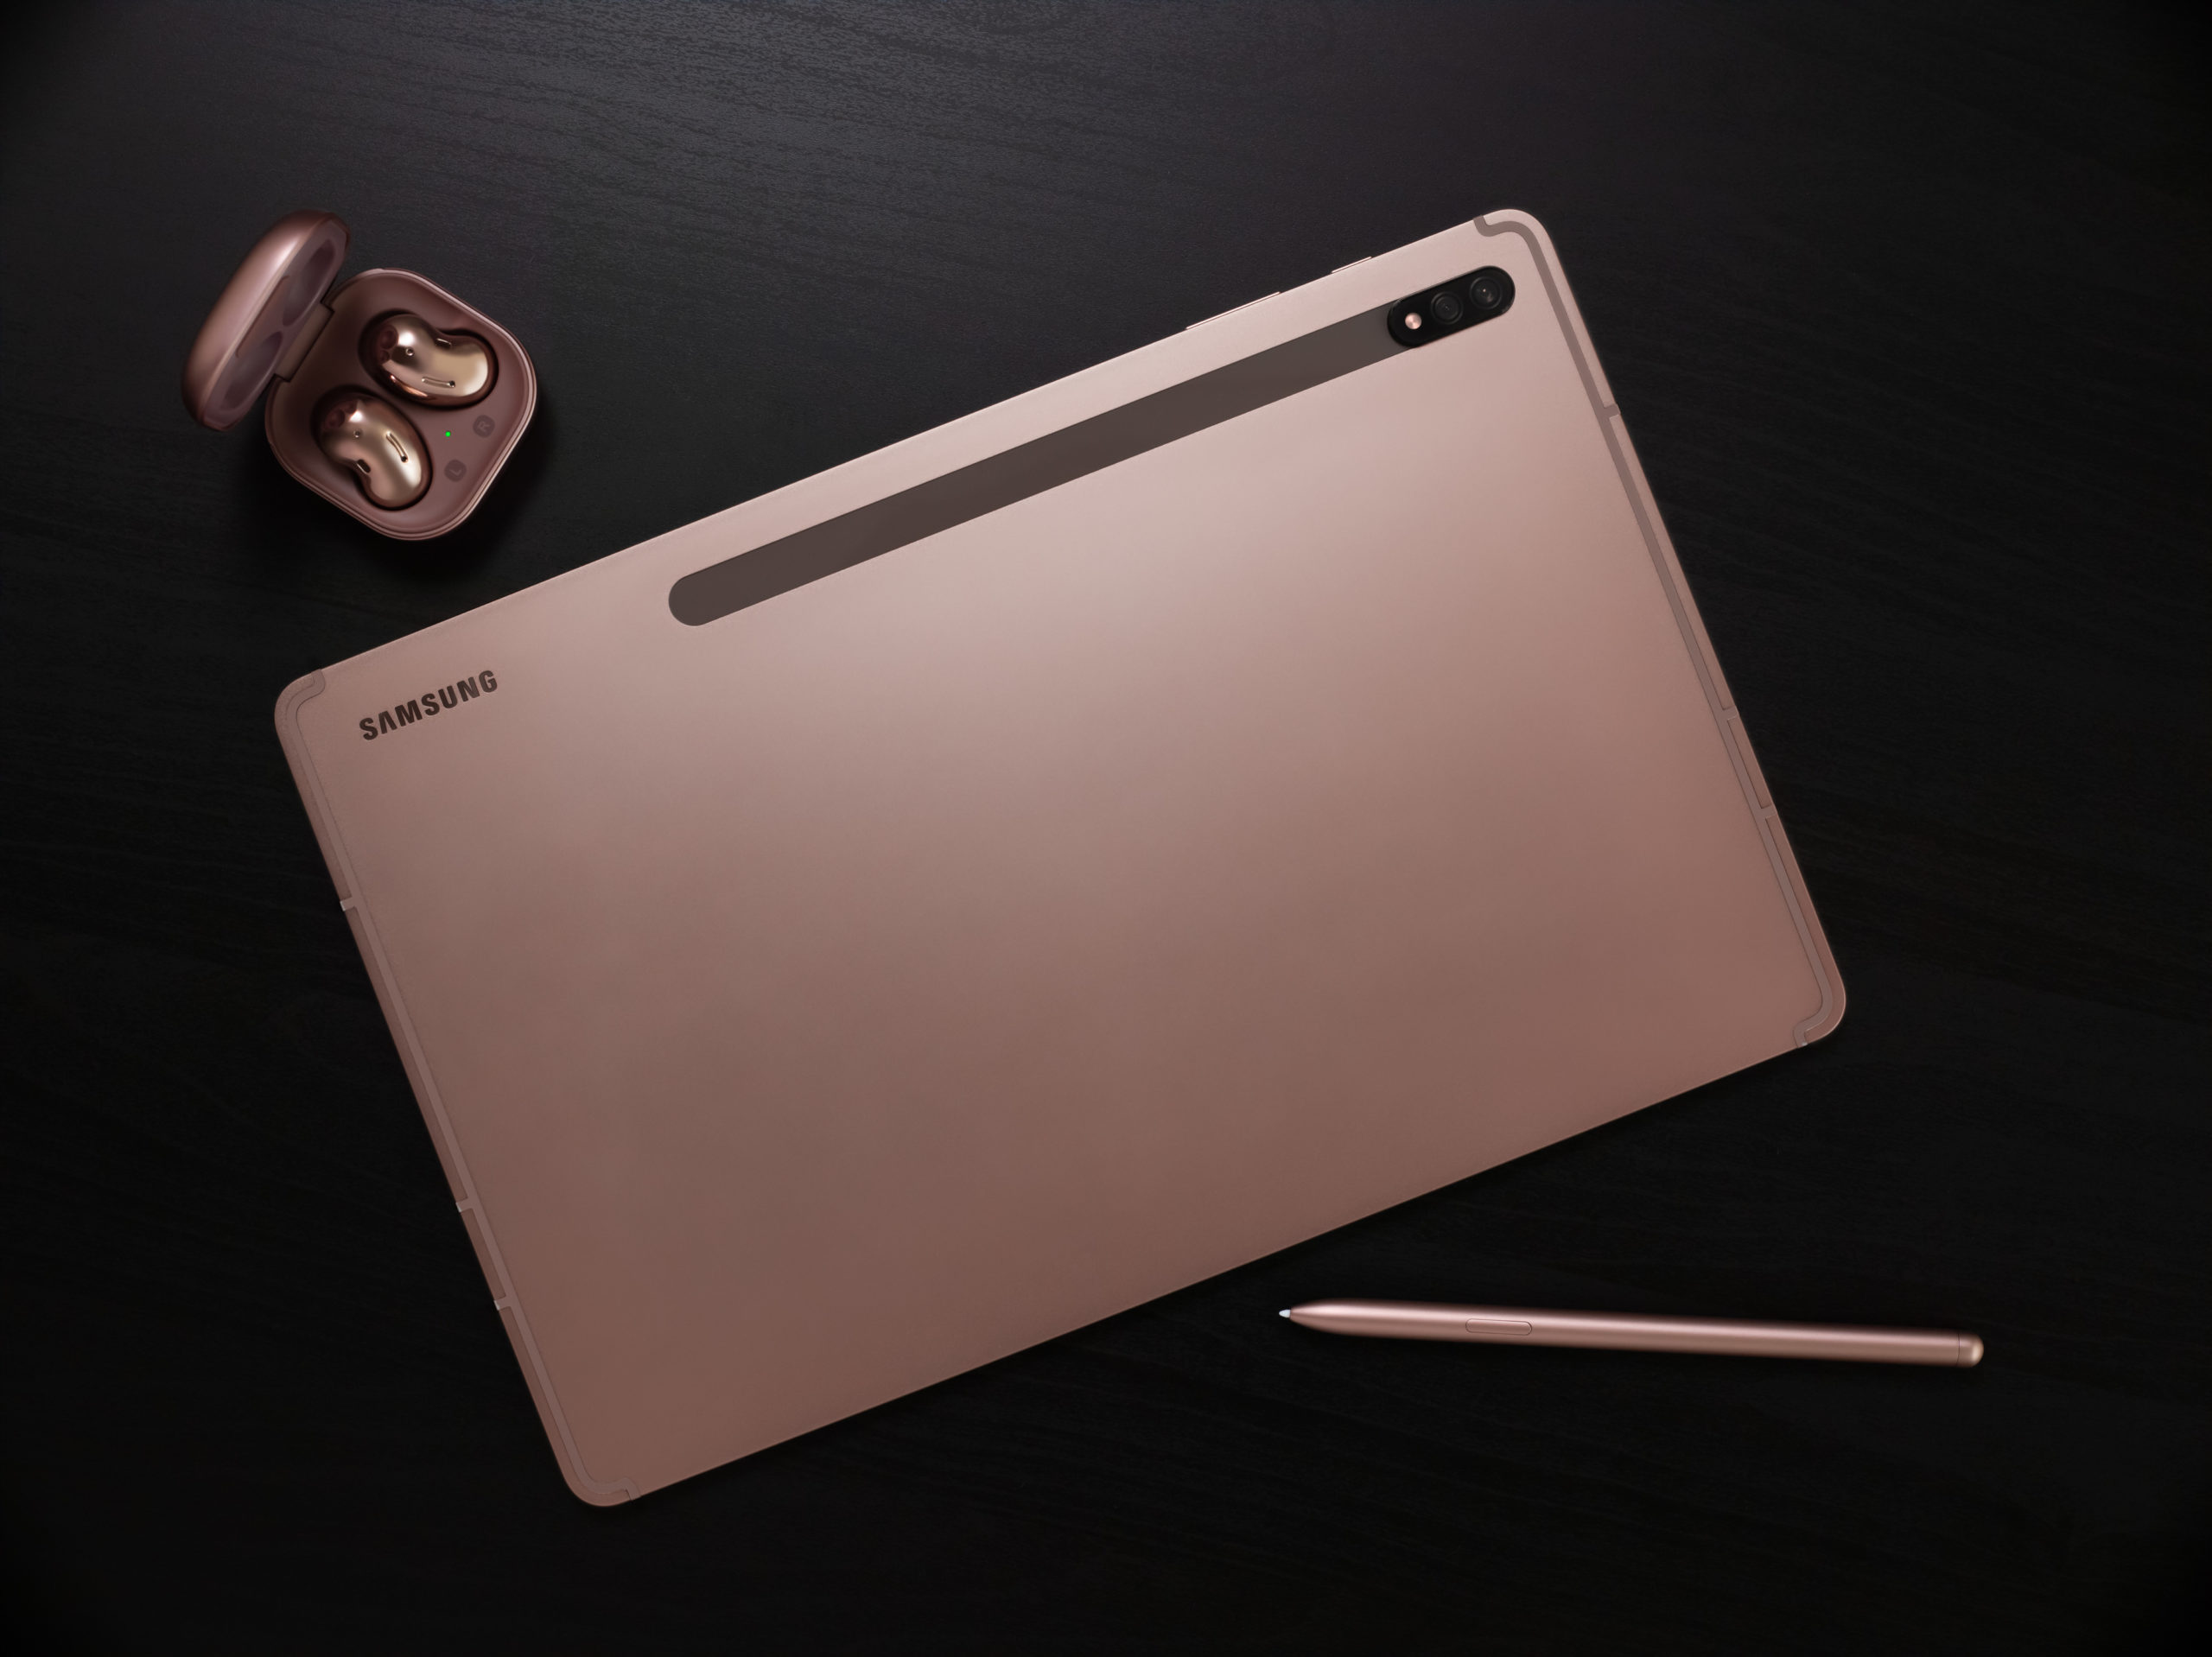 Galaxy Tab S7 and S Pen